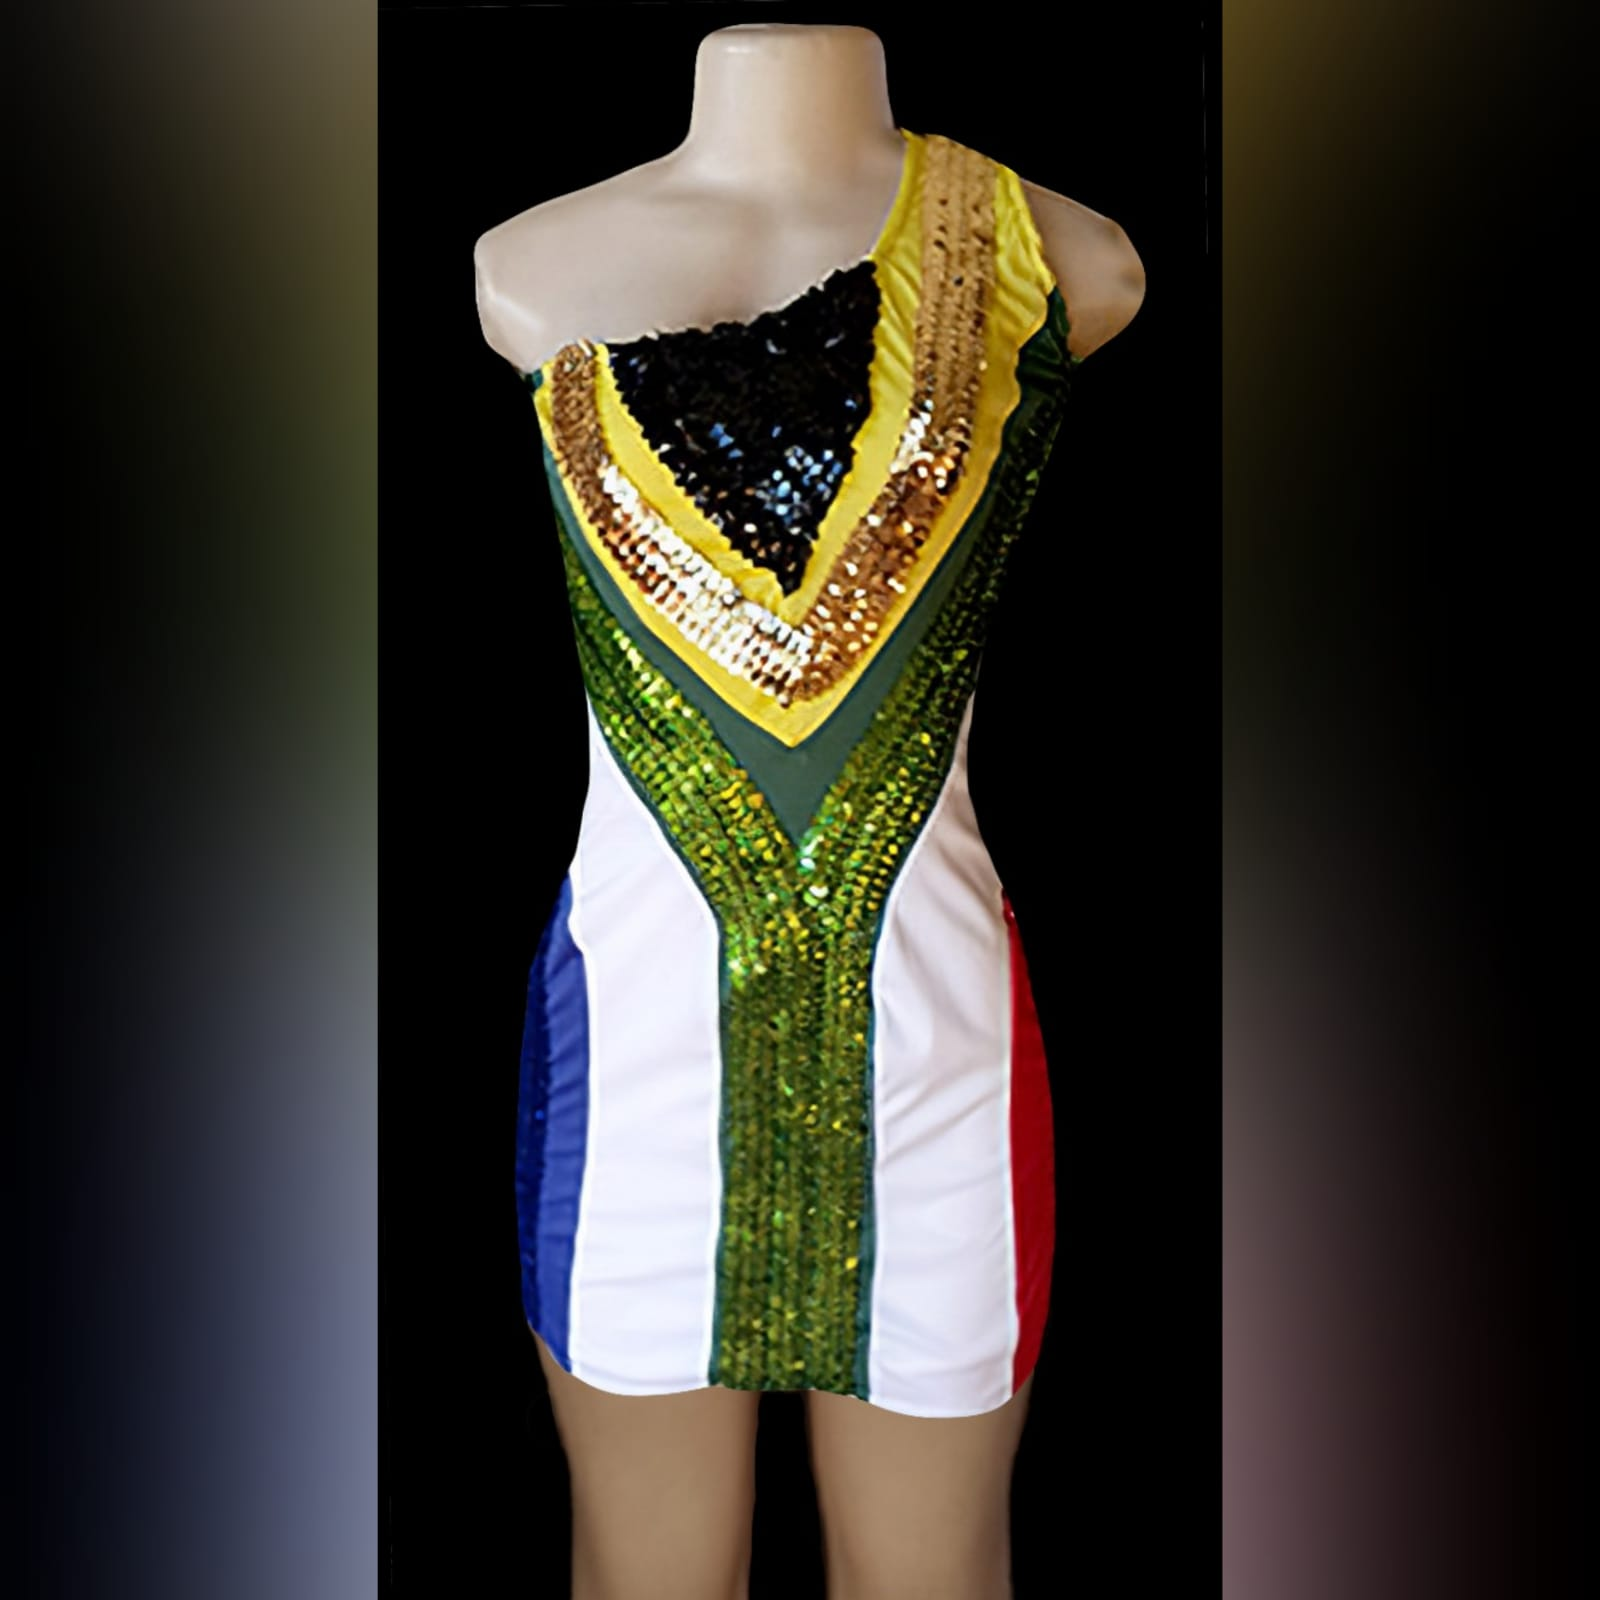 South african flag dress with single shoulder 1 a stretchy, south african mini dress with a single shoulder. Dress with and without sequins. Designed and made for a client in the uk.